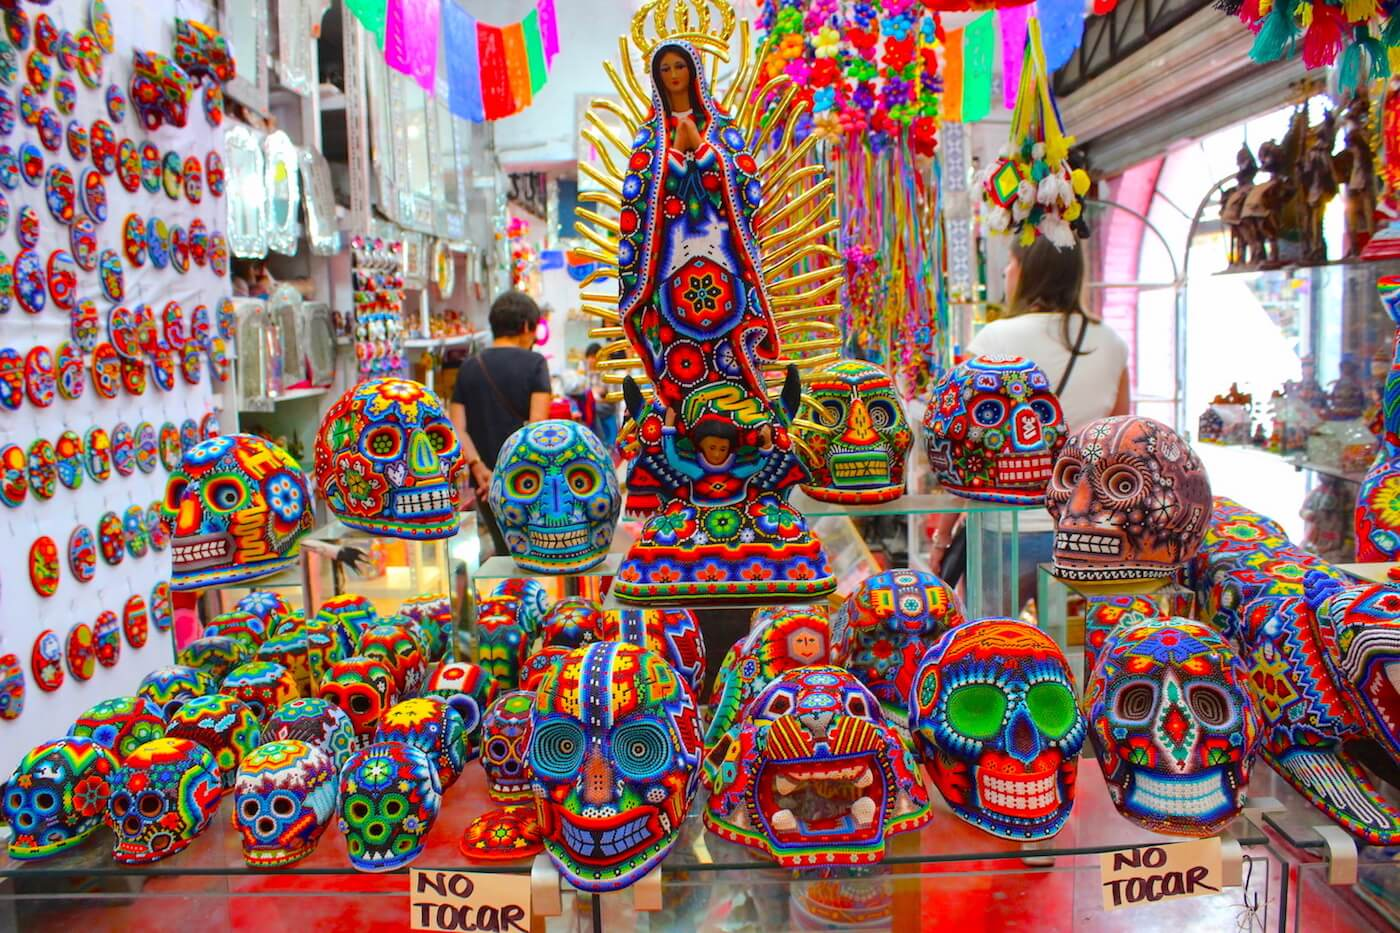 bead art sculpture from artesian market la ciudadela